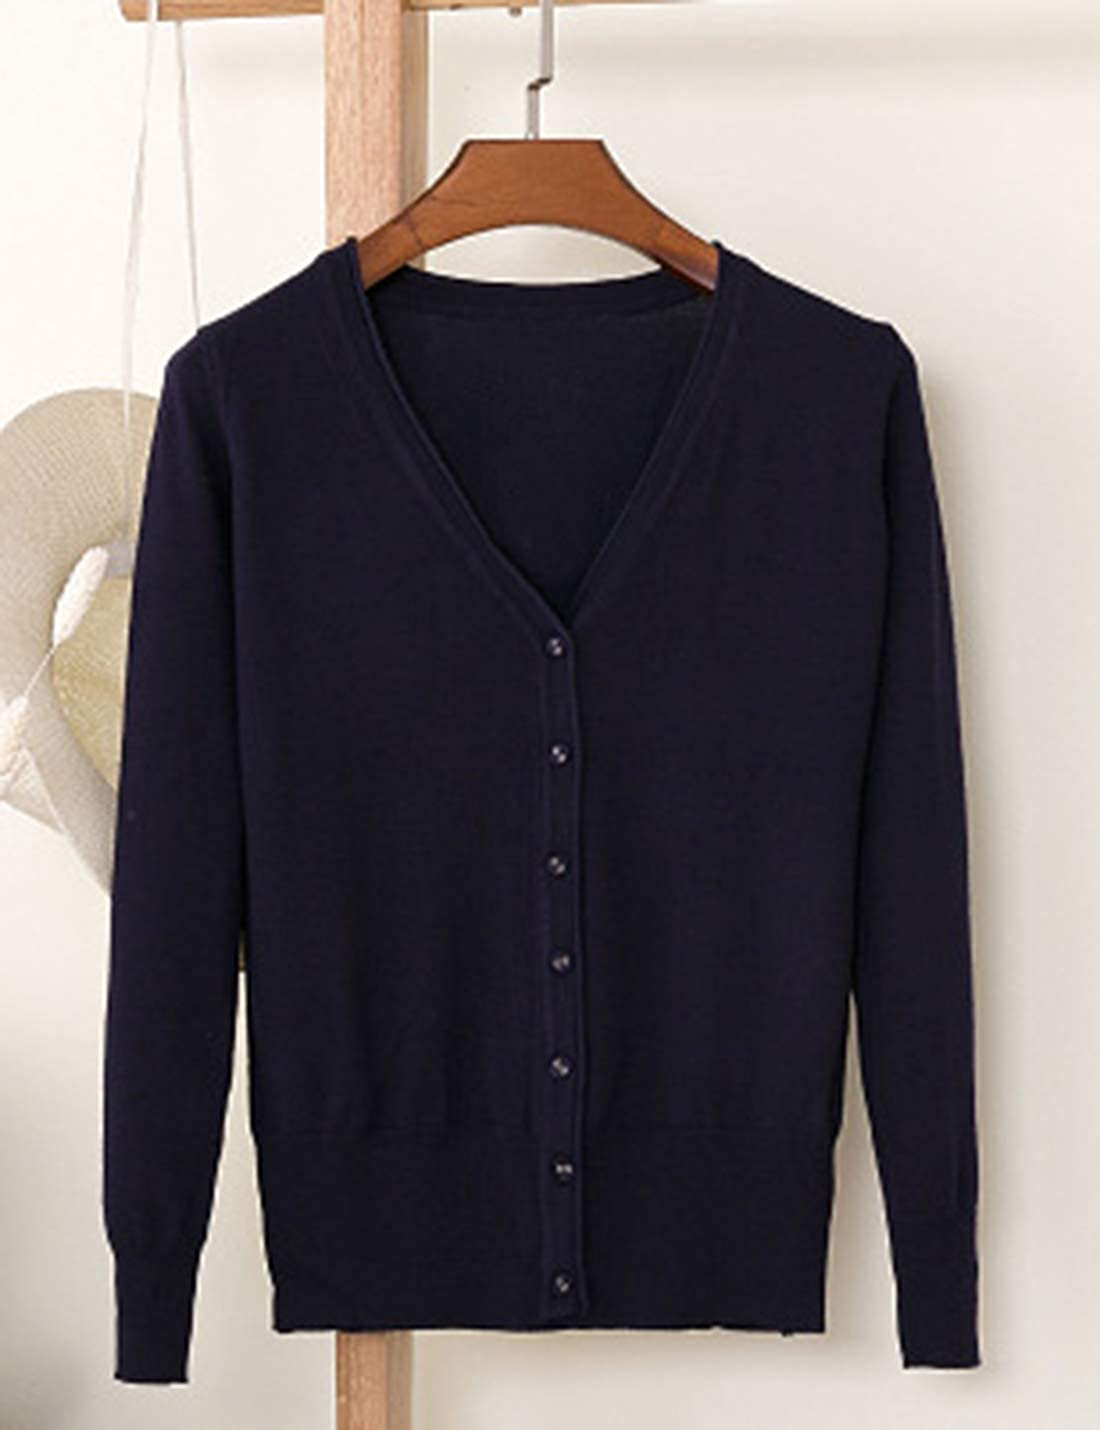 SeekMe Women's Long Sleeve V Neck Solid Color Lightweight Button Down Cardigan Sweaterr